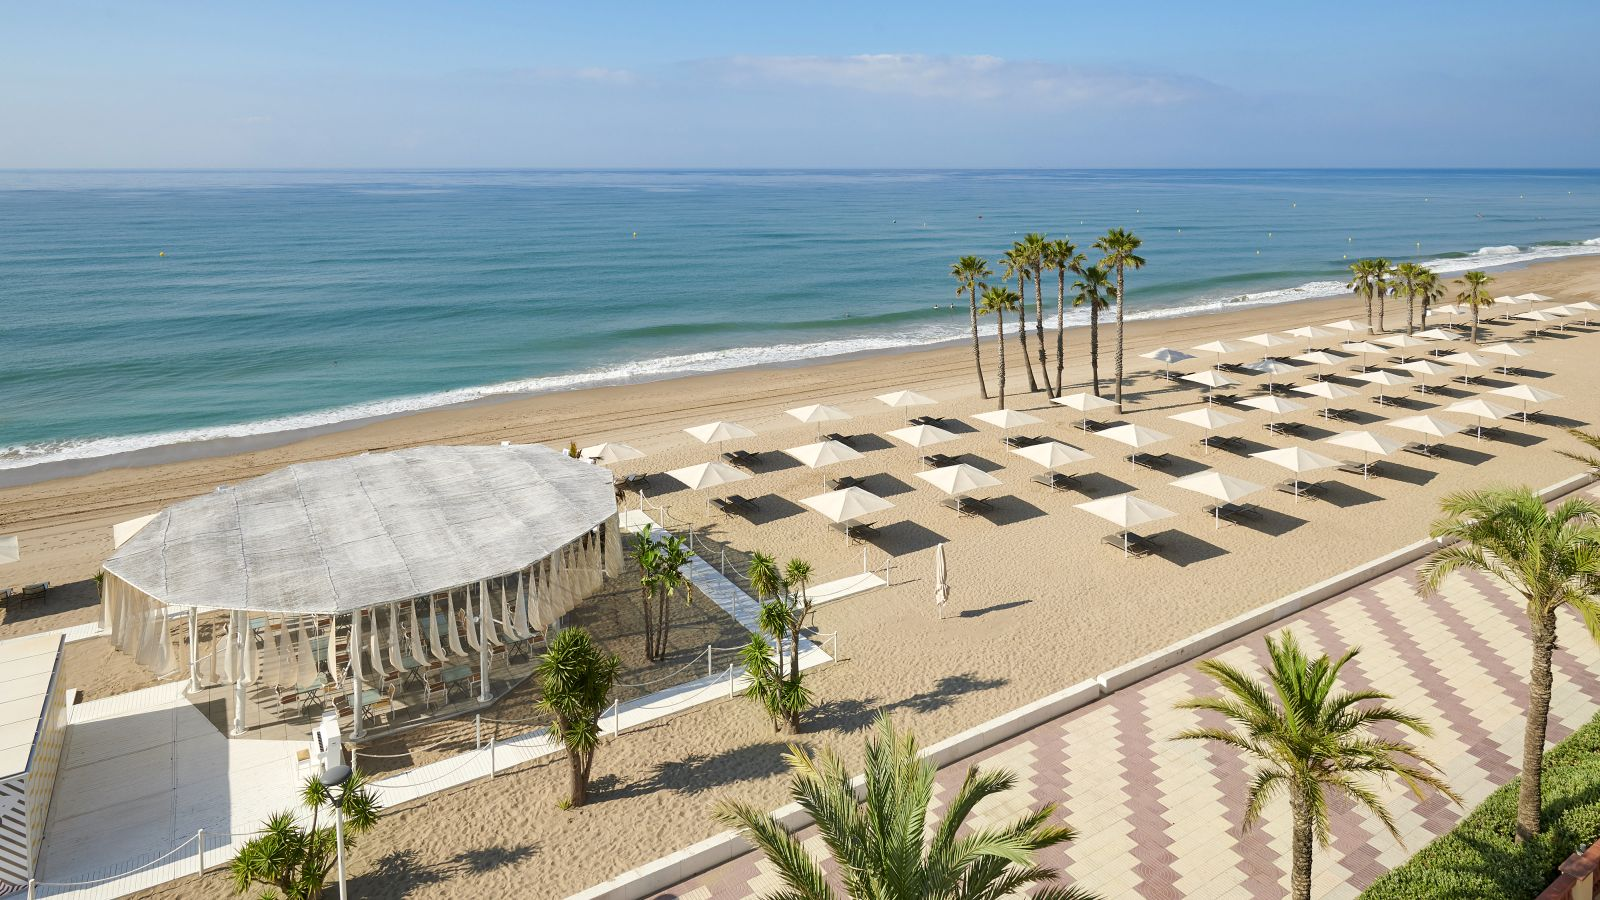 The Beach Club at Le Méridien Ra Beach Hotel & Spa